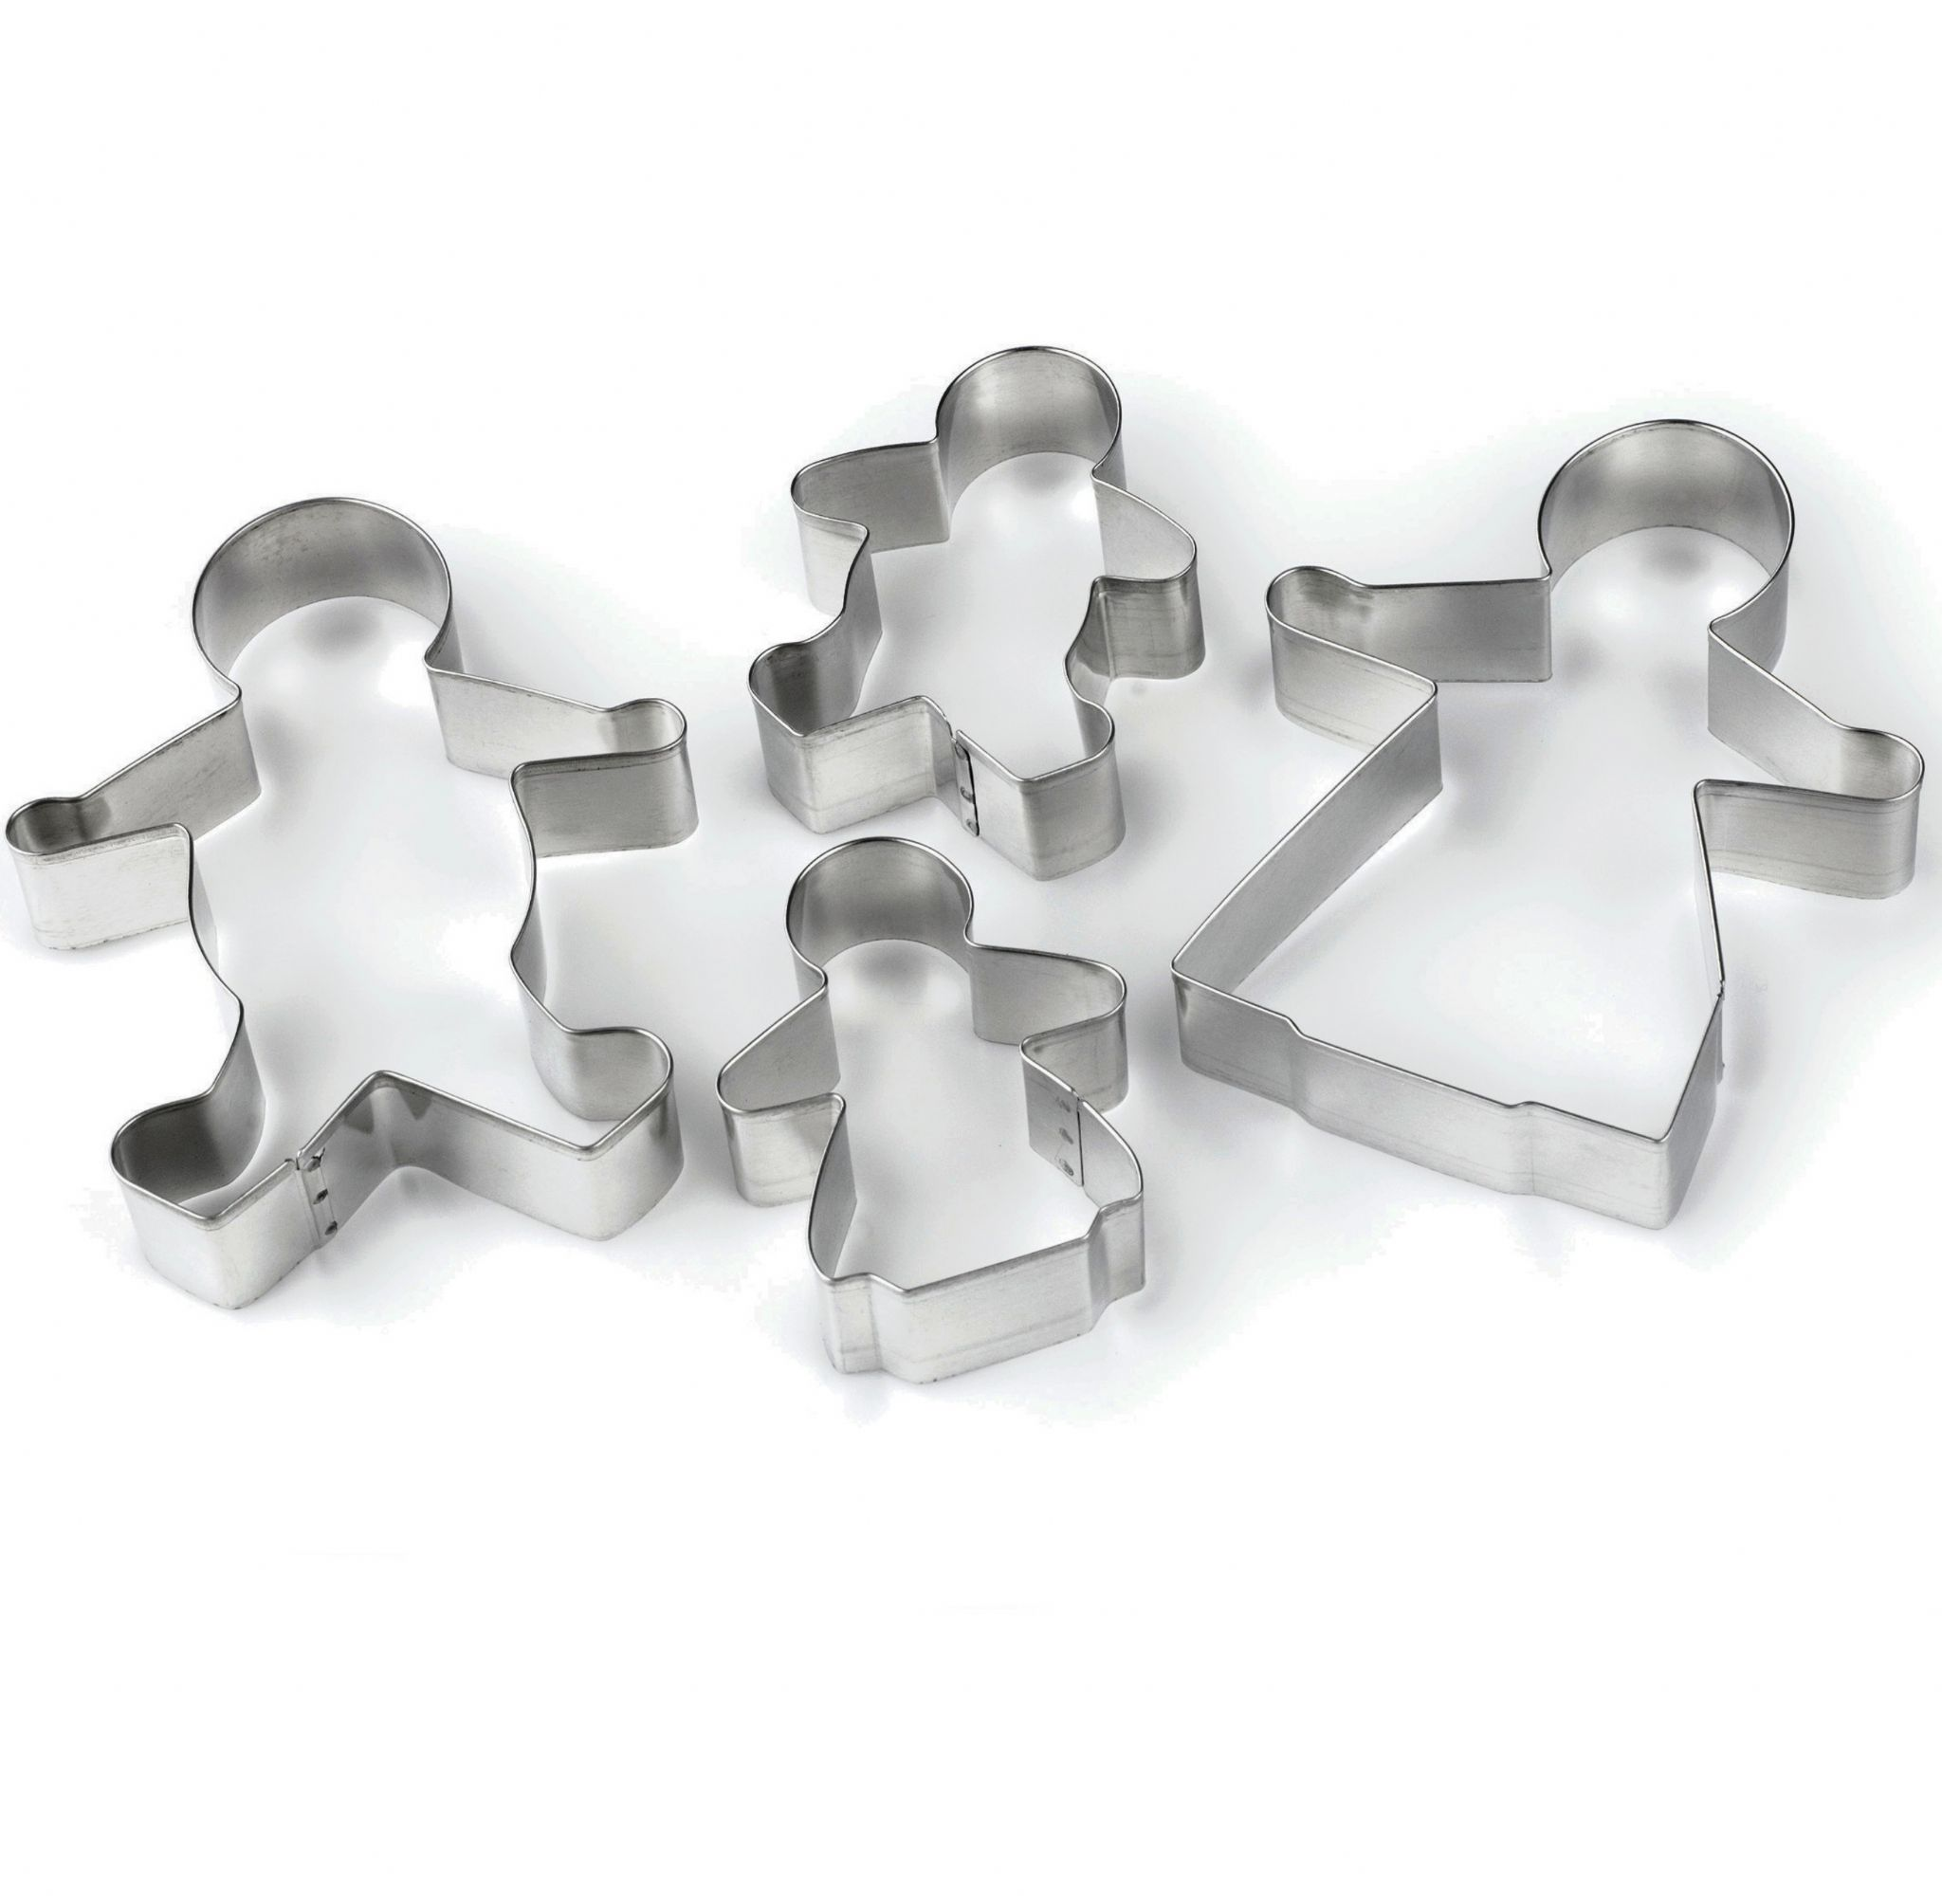 Tala Gingerbread Family Man Kids Cookie Cutters Stainless